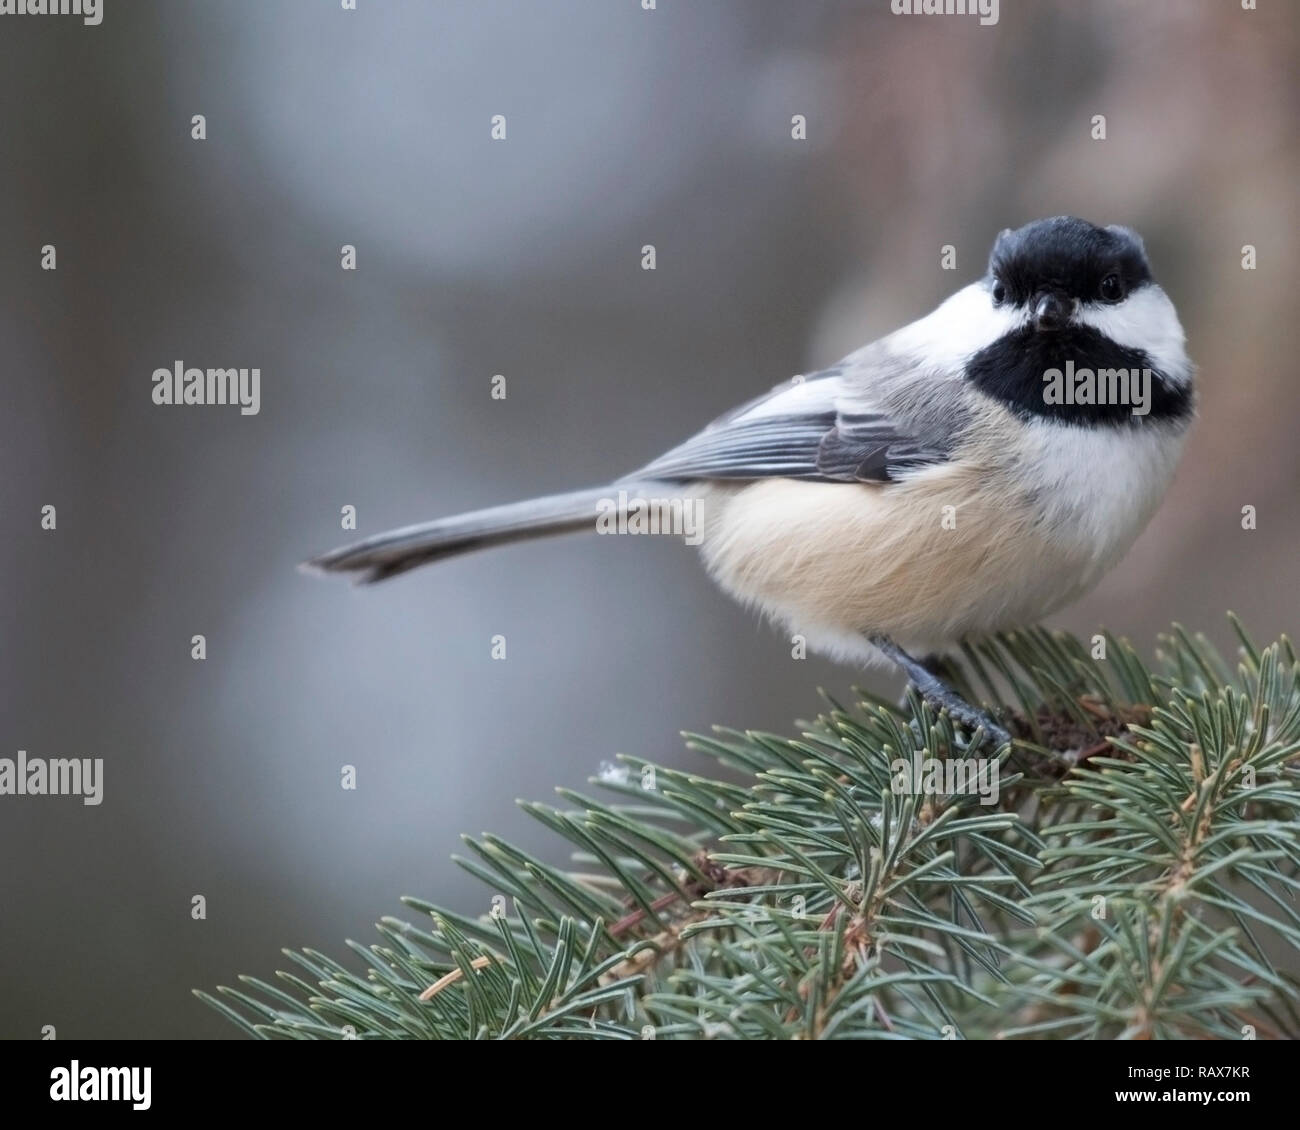 Black-capped chickadee (Poecile atricapillus) perched on tree  branch - Stock Image